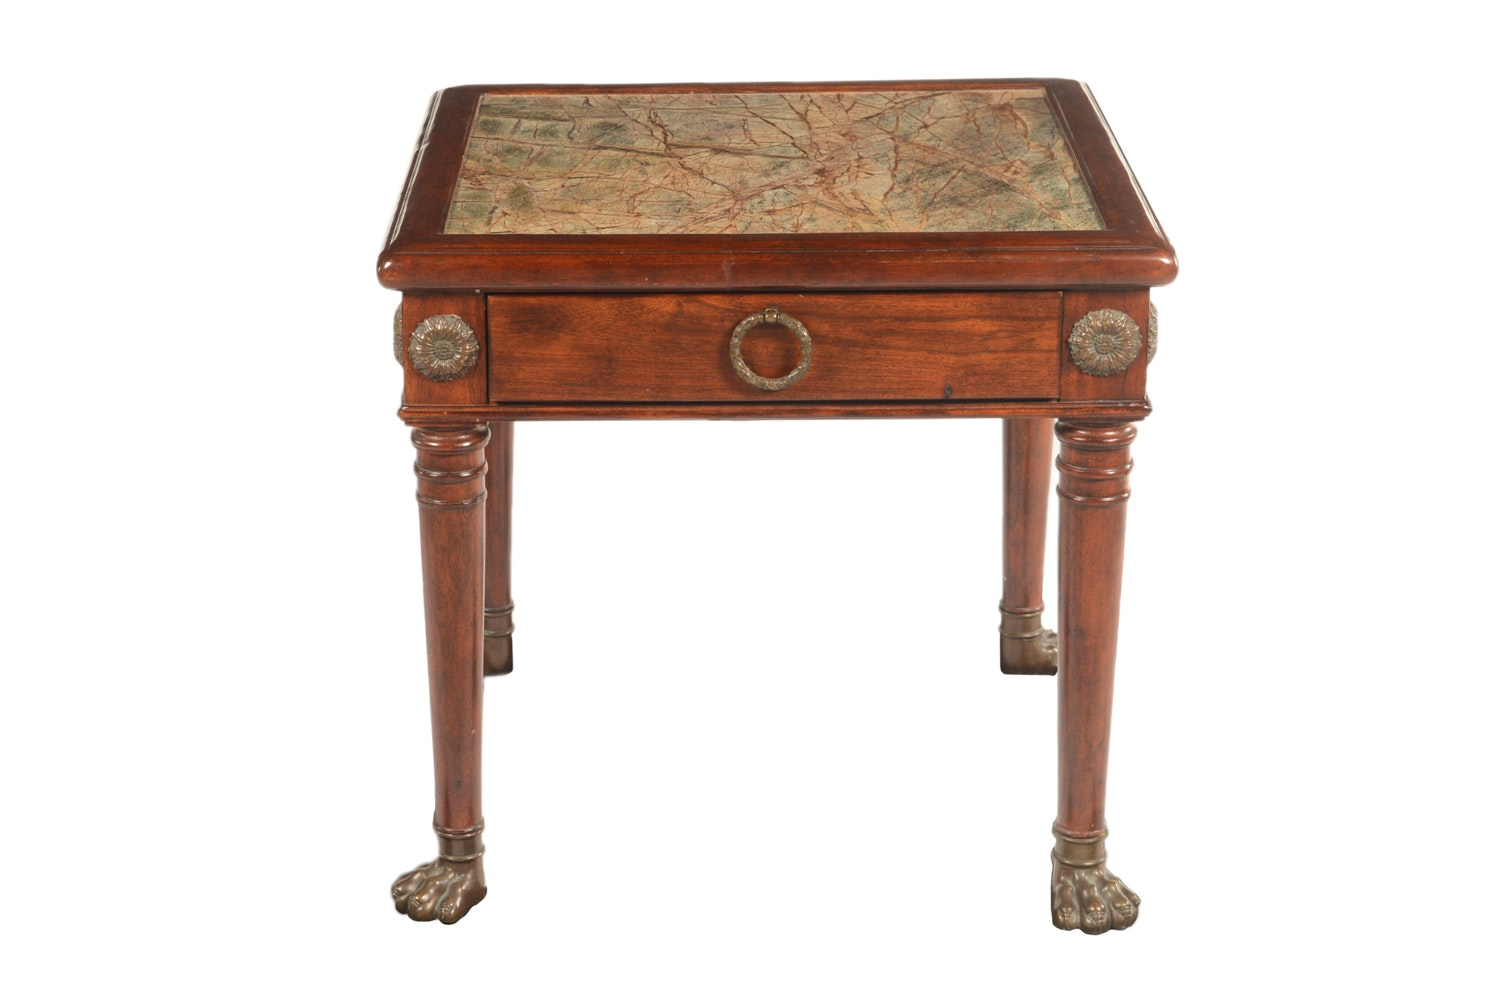 Neoclassical Style Mahogany Finished Wood and Stone Top Side Table, 20th Century